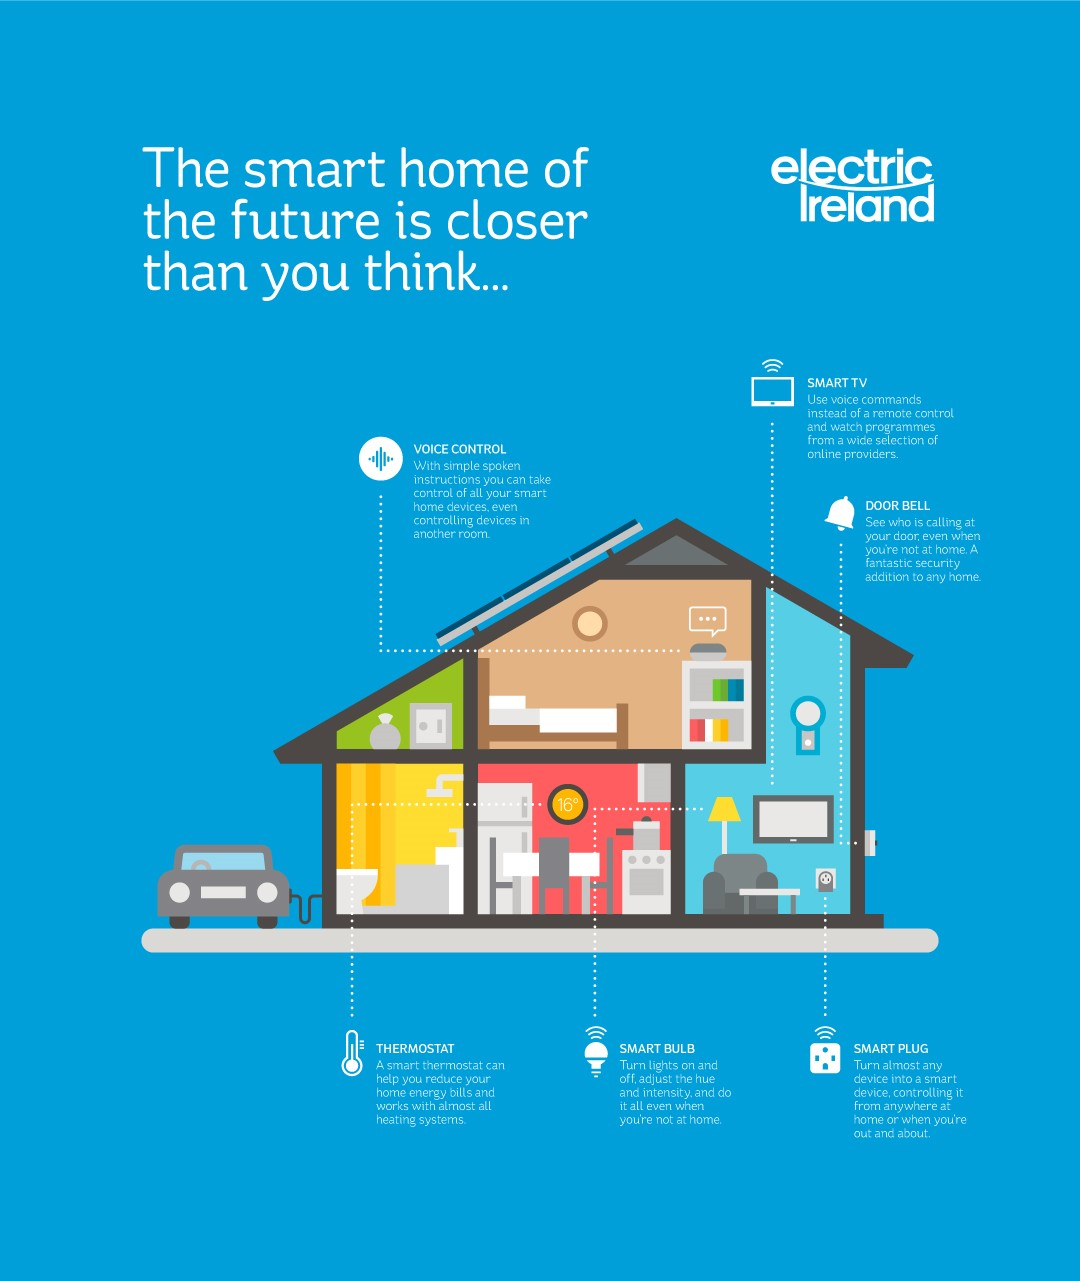 The Smart Home of the future is closer than you think